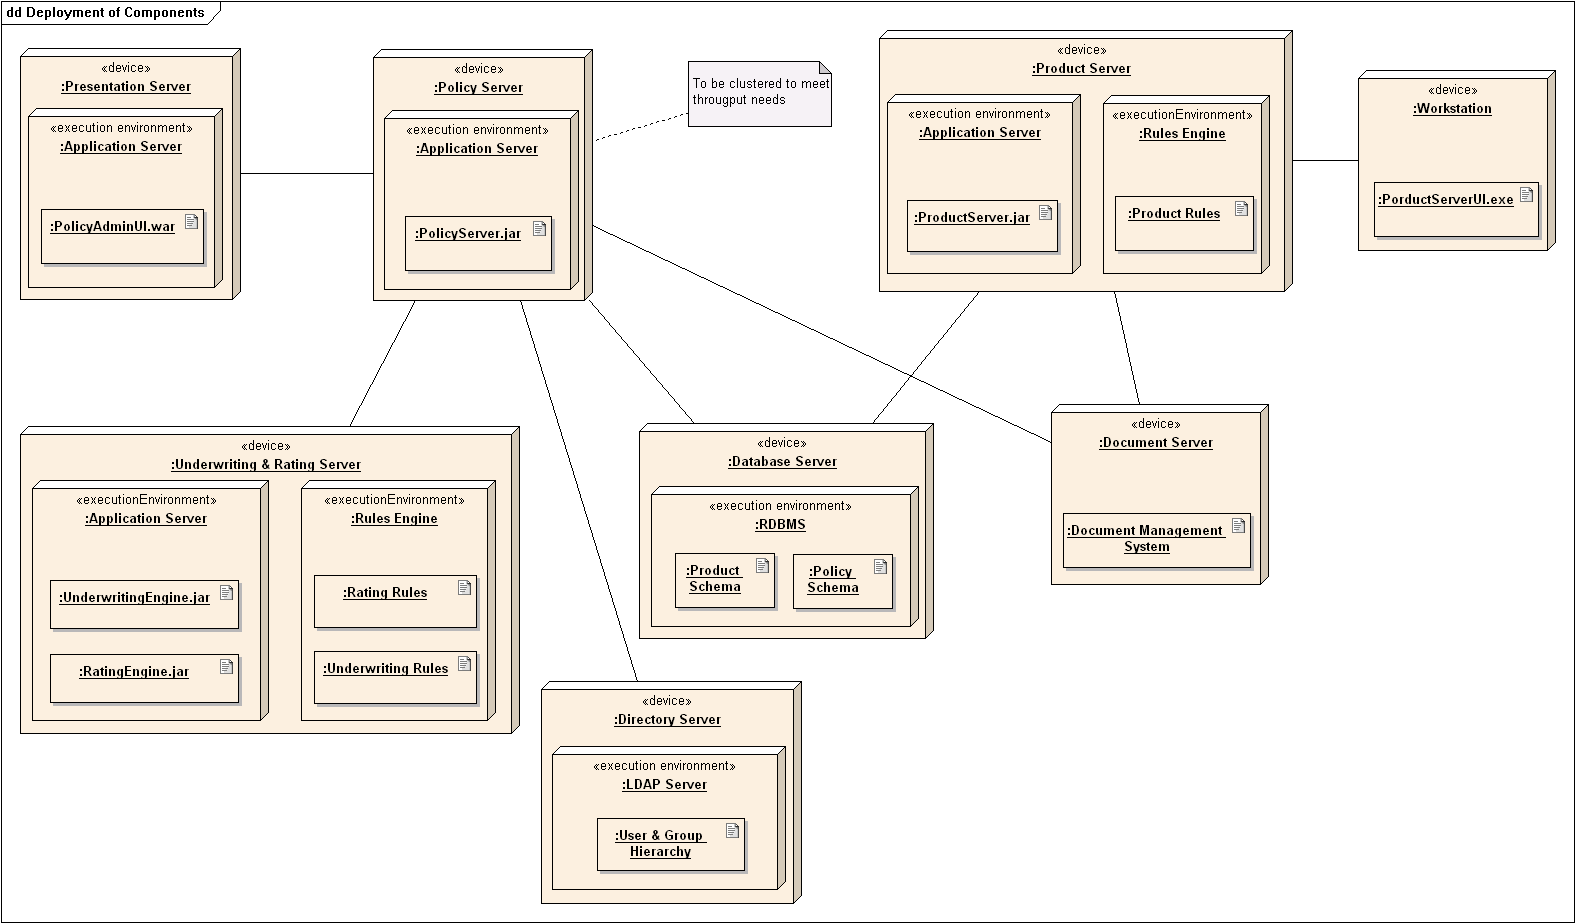 Deployment diagram wikipedia for E commerce system architecture diagram